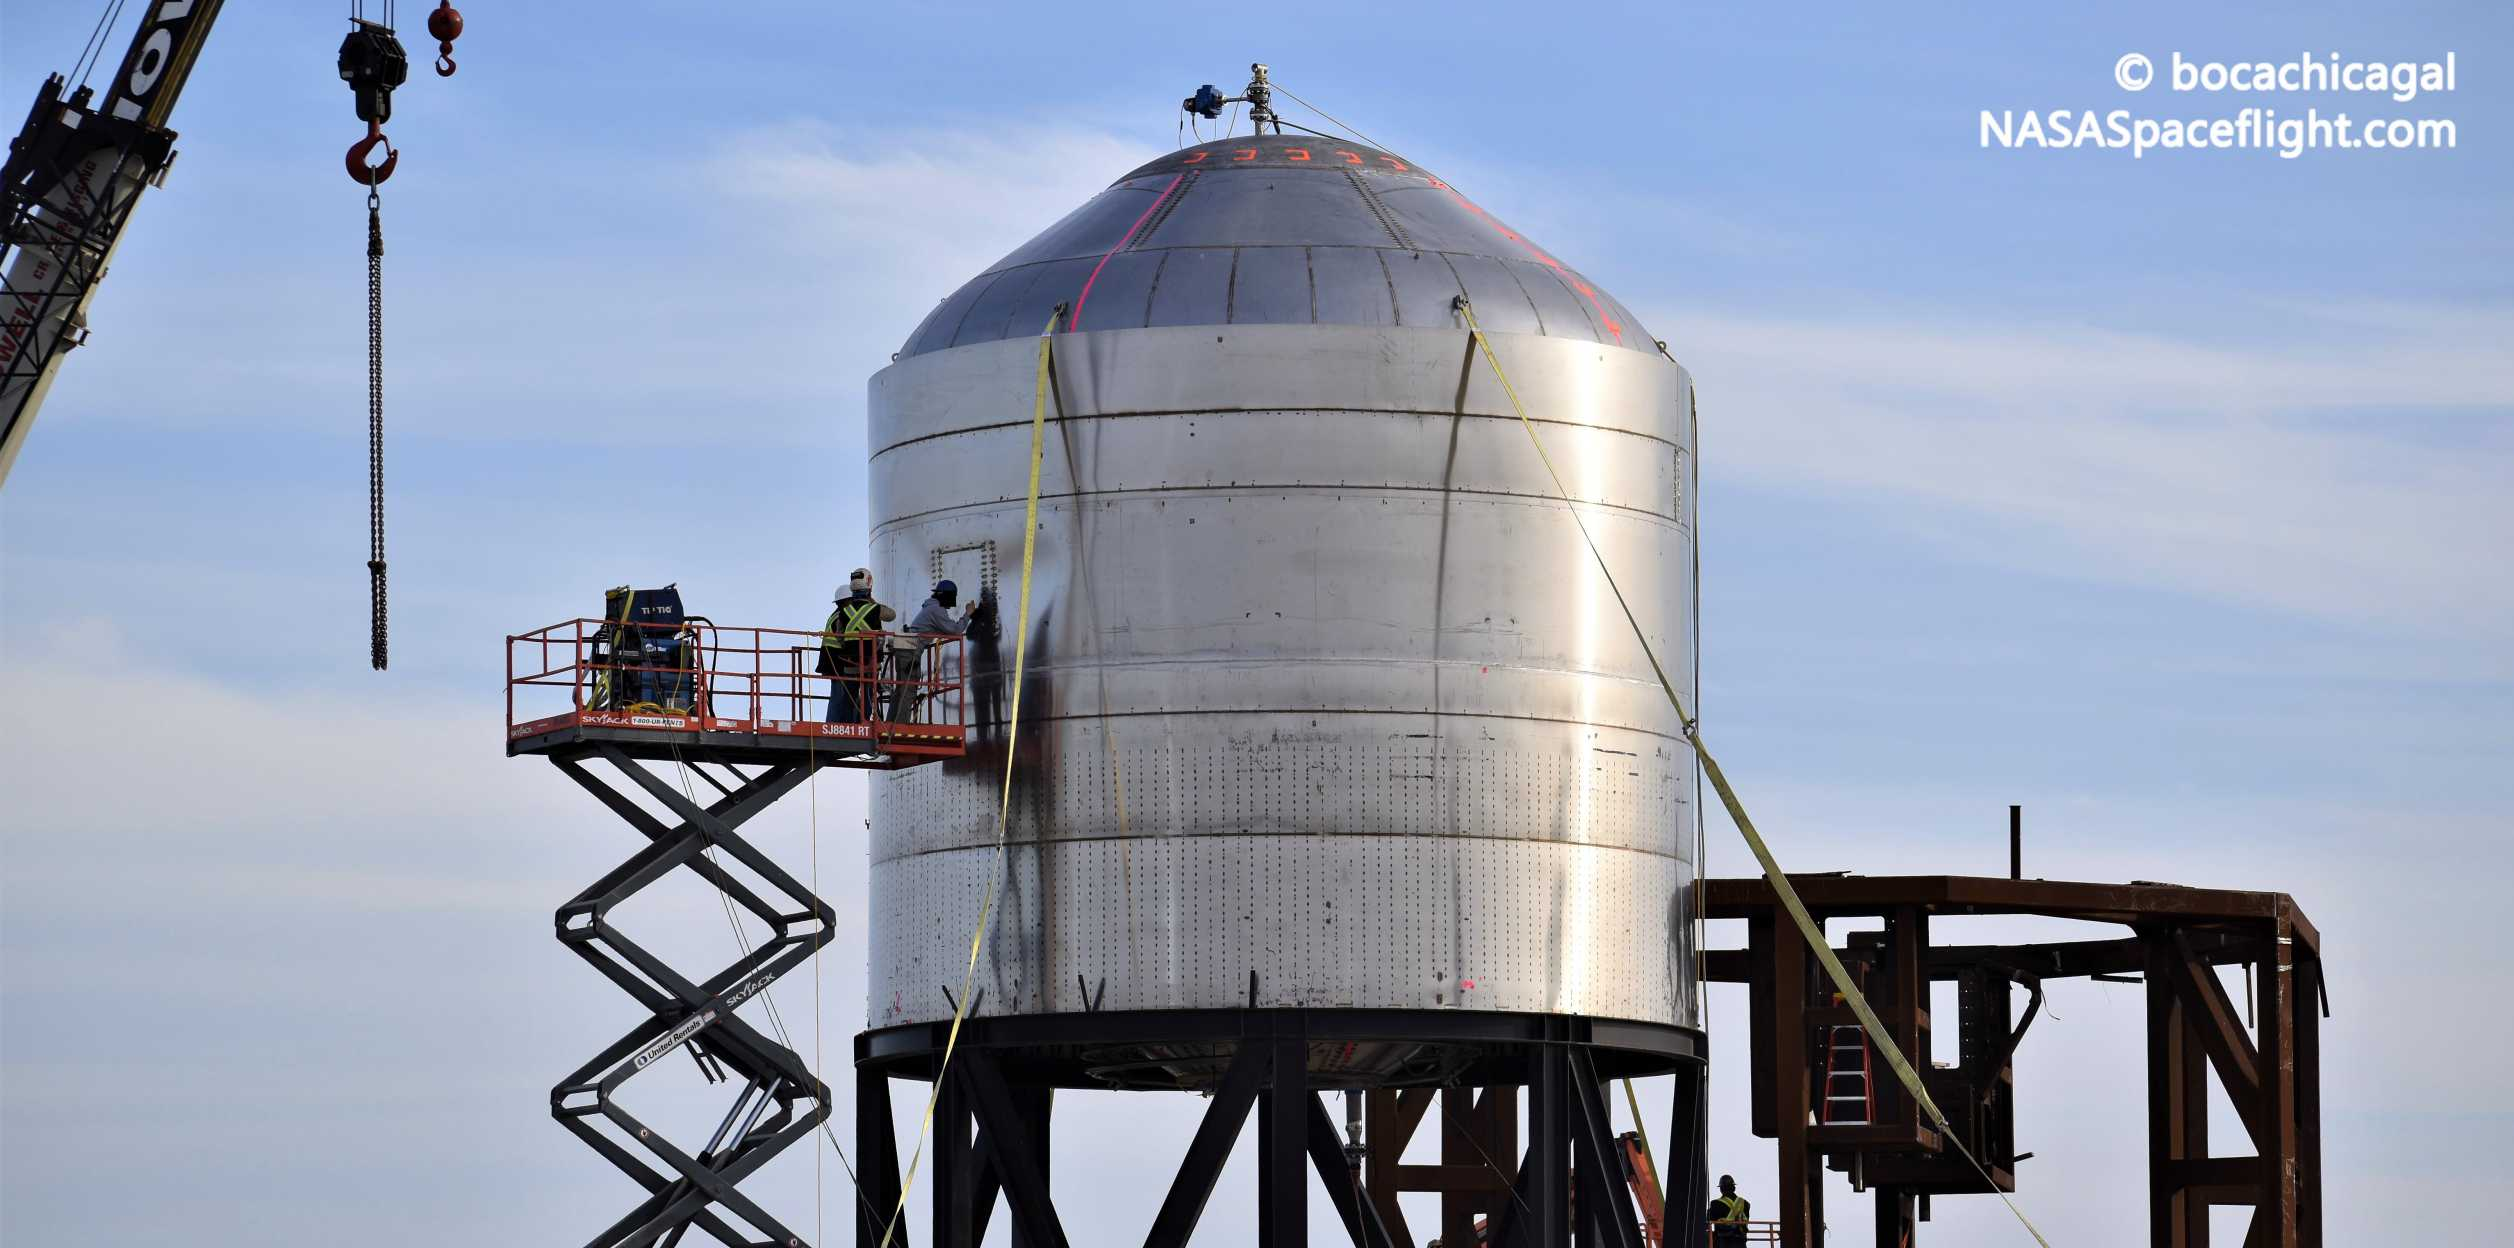 Starship Boca Chica 030620 (NASASpaceflight – bocachicagal) SN02 test tank water 1 crop (c)